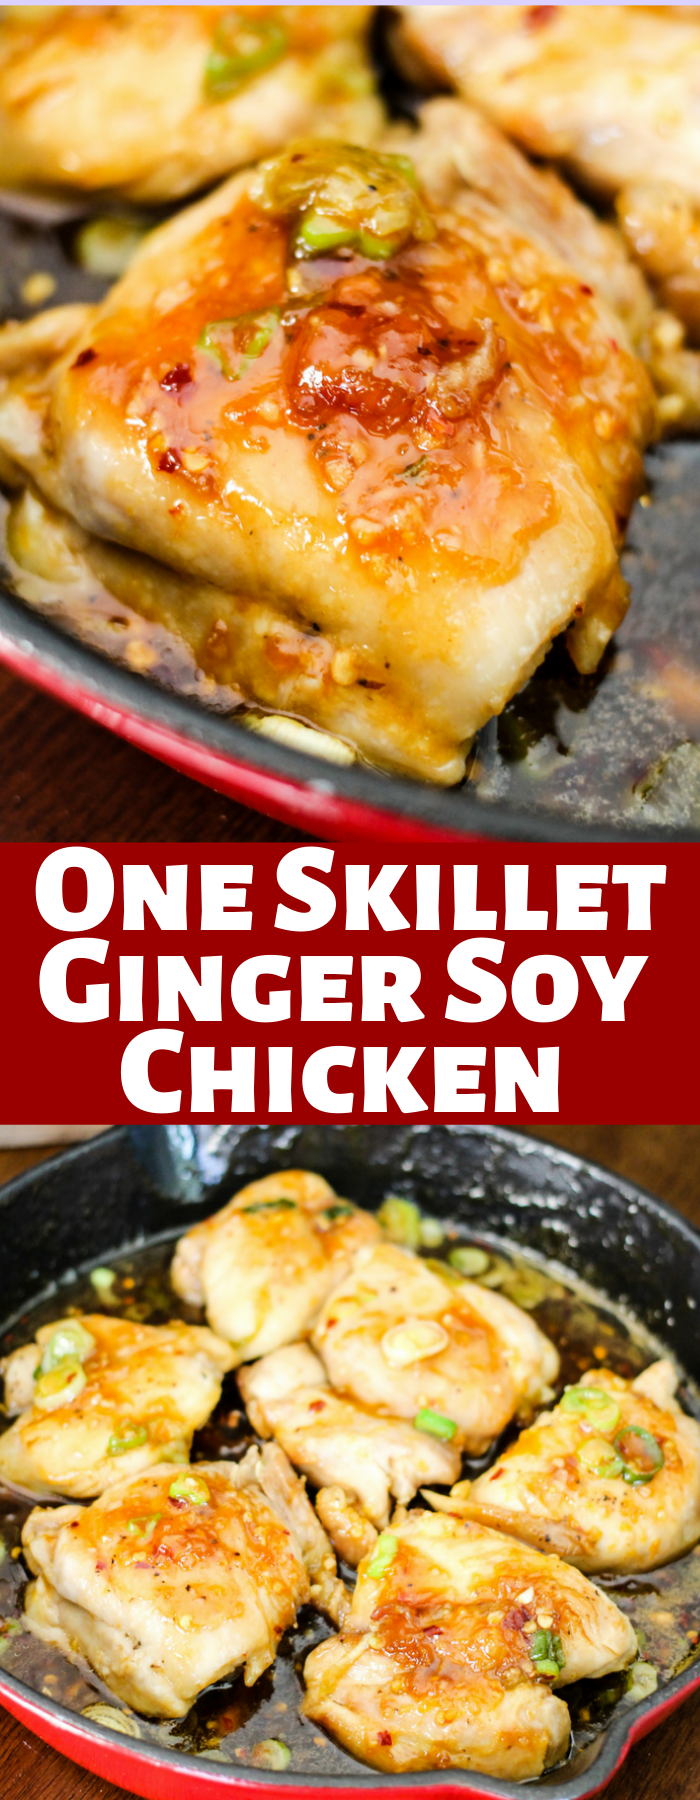 These Ginger Soy Chicken thighs are made in one skillet and simmered in the most delicious asian sauce. This 20 minute meal is perfect for dinner!